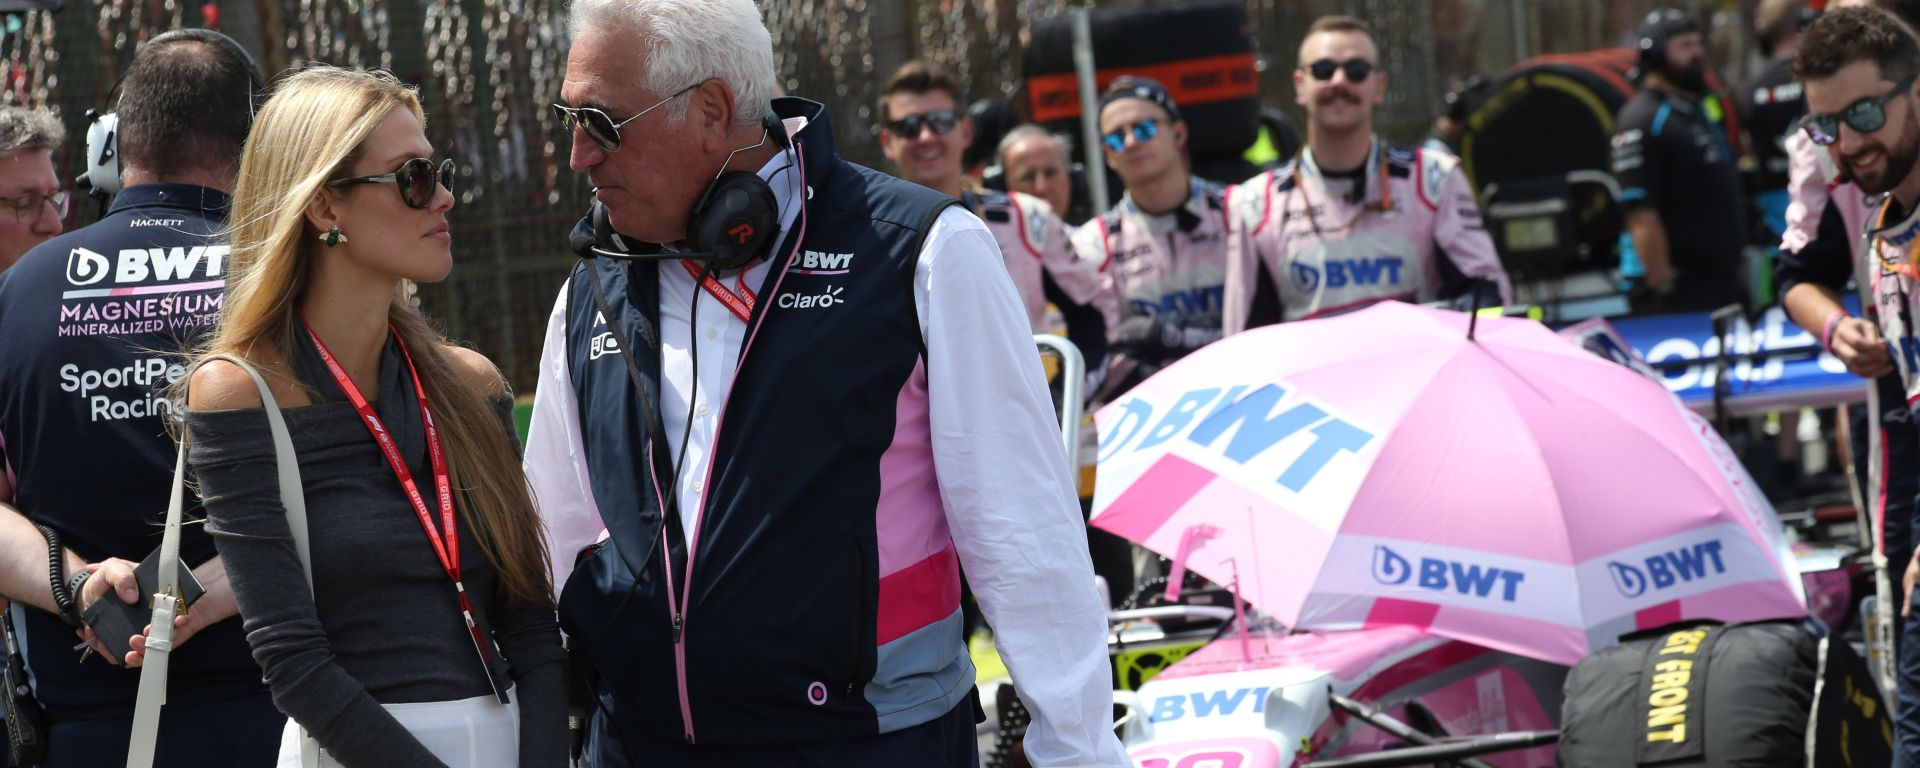 F1, GP Brasile 2019: Lawrence Stroll, proprietario della Racing Point